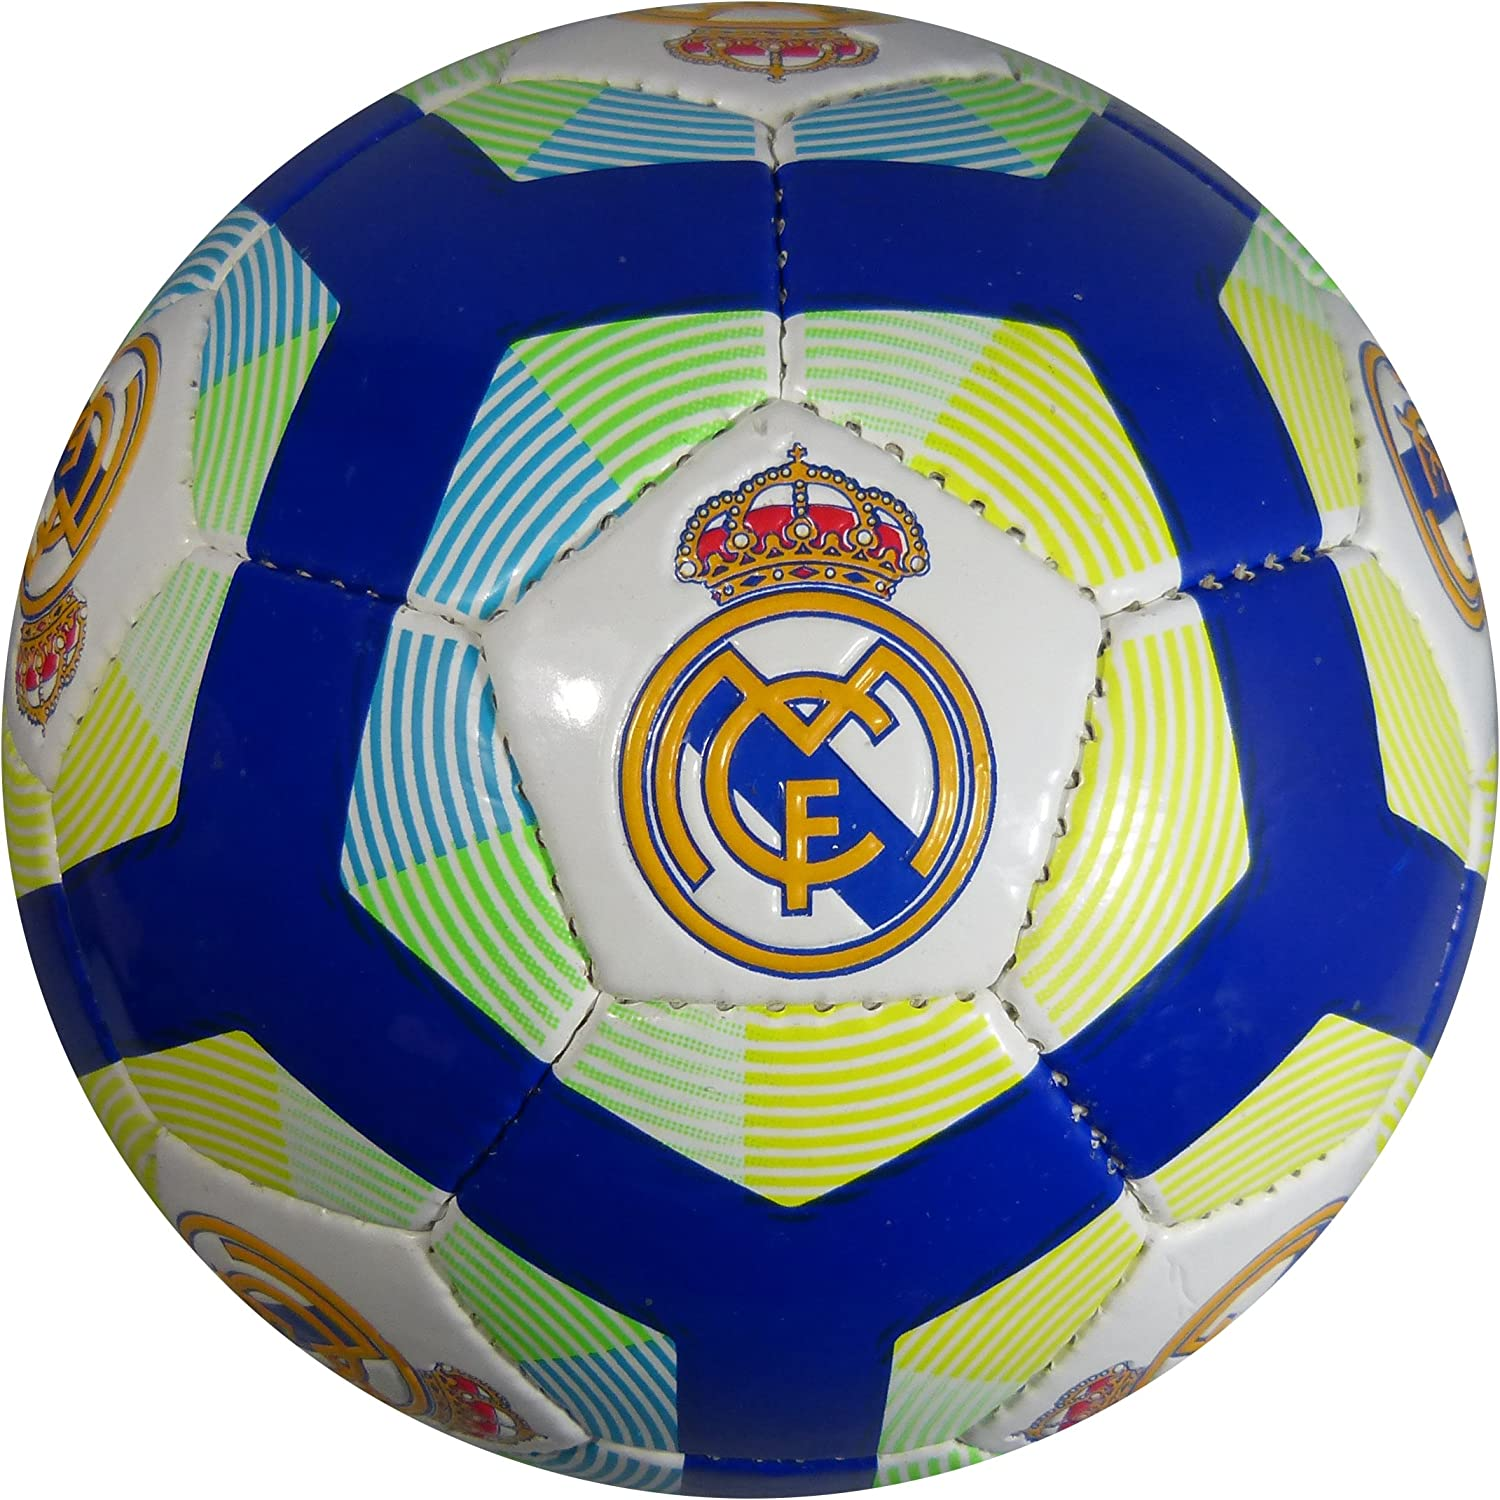 BALON GRANDE TRICOLOR REAL MADRID: Amazon.es: Hogar